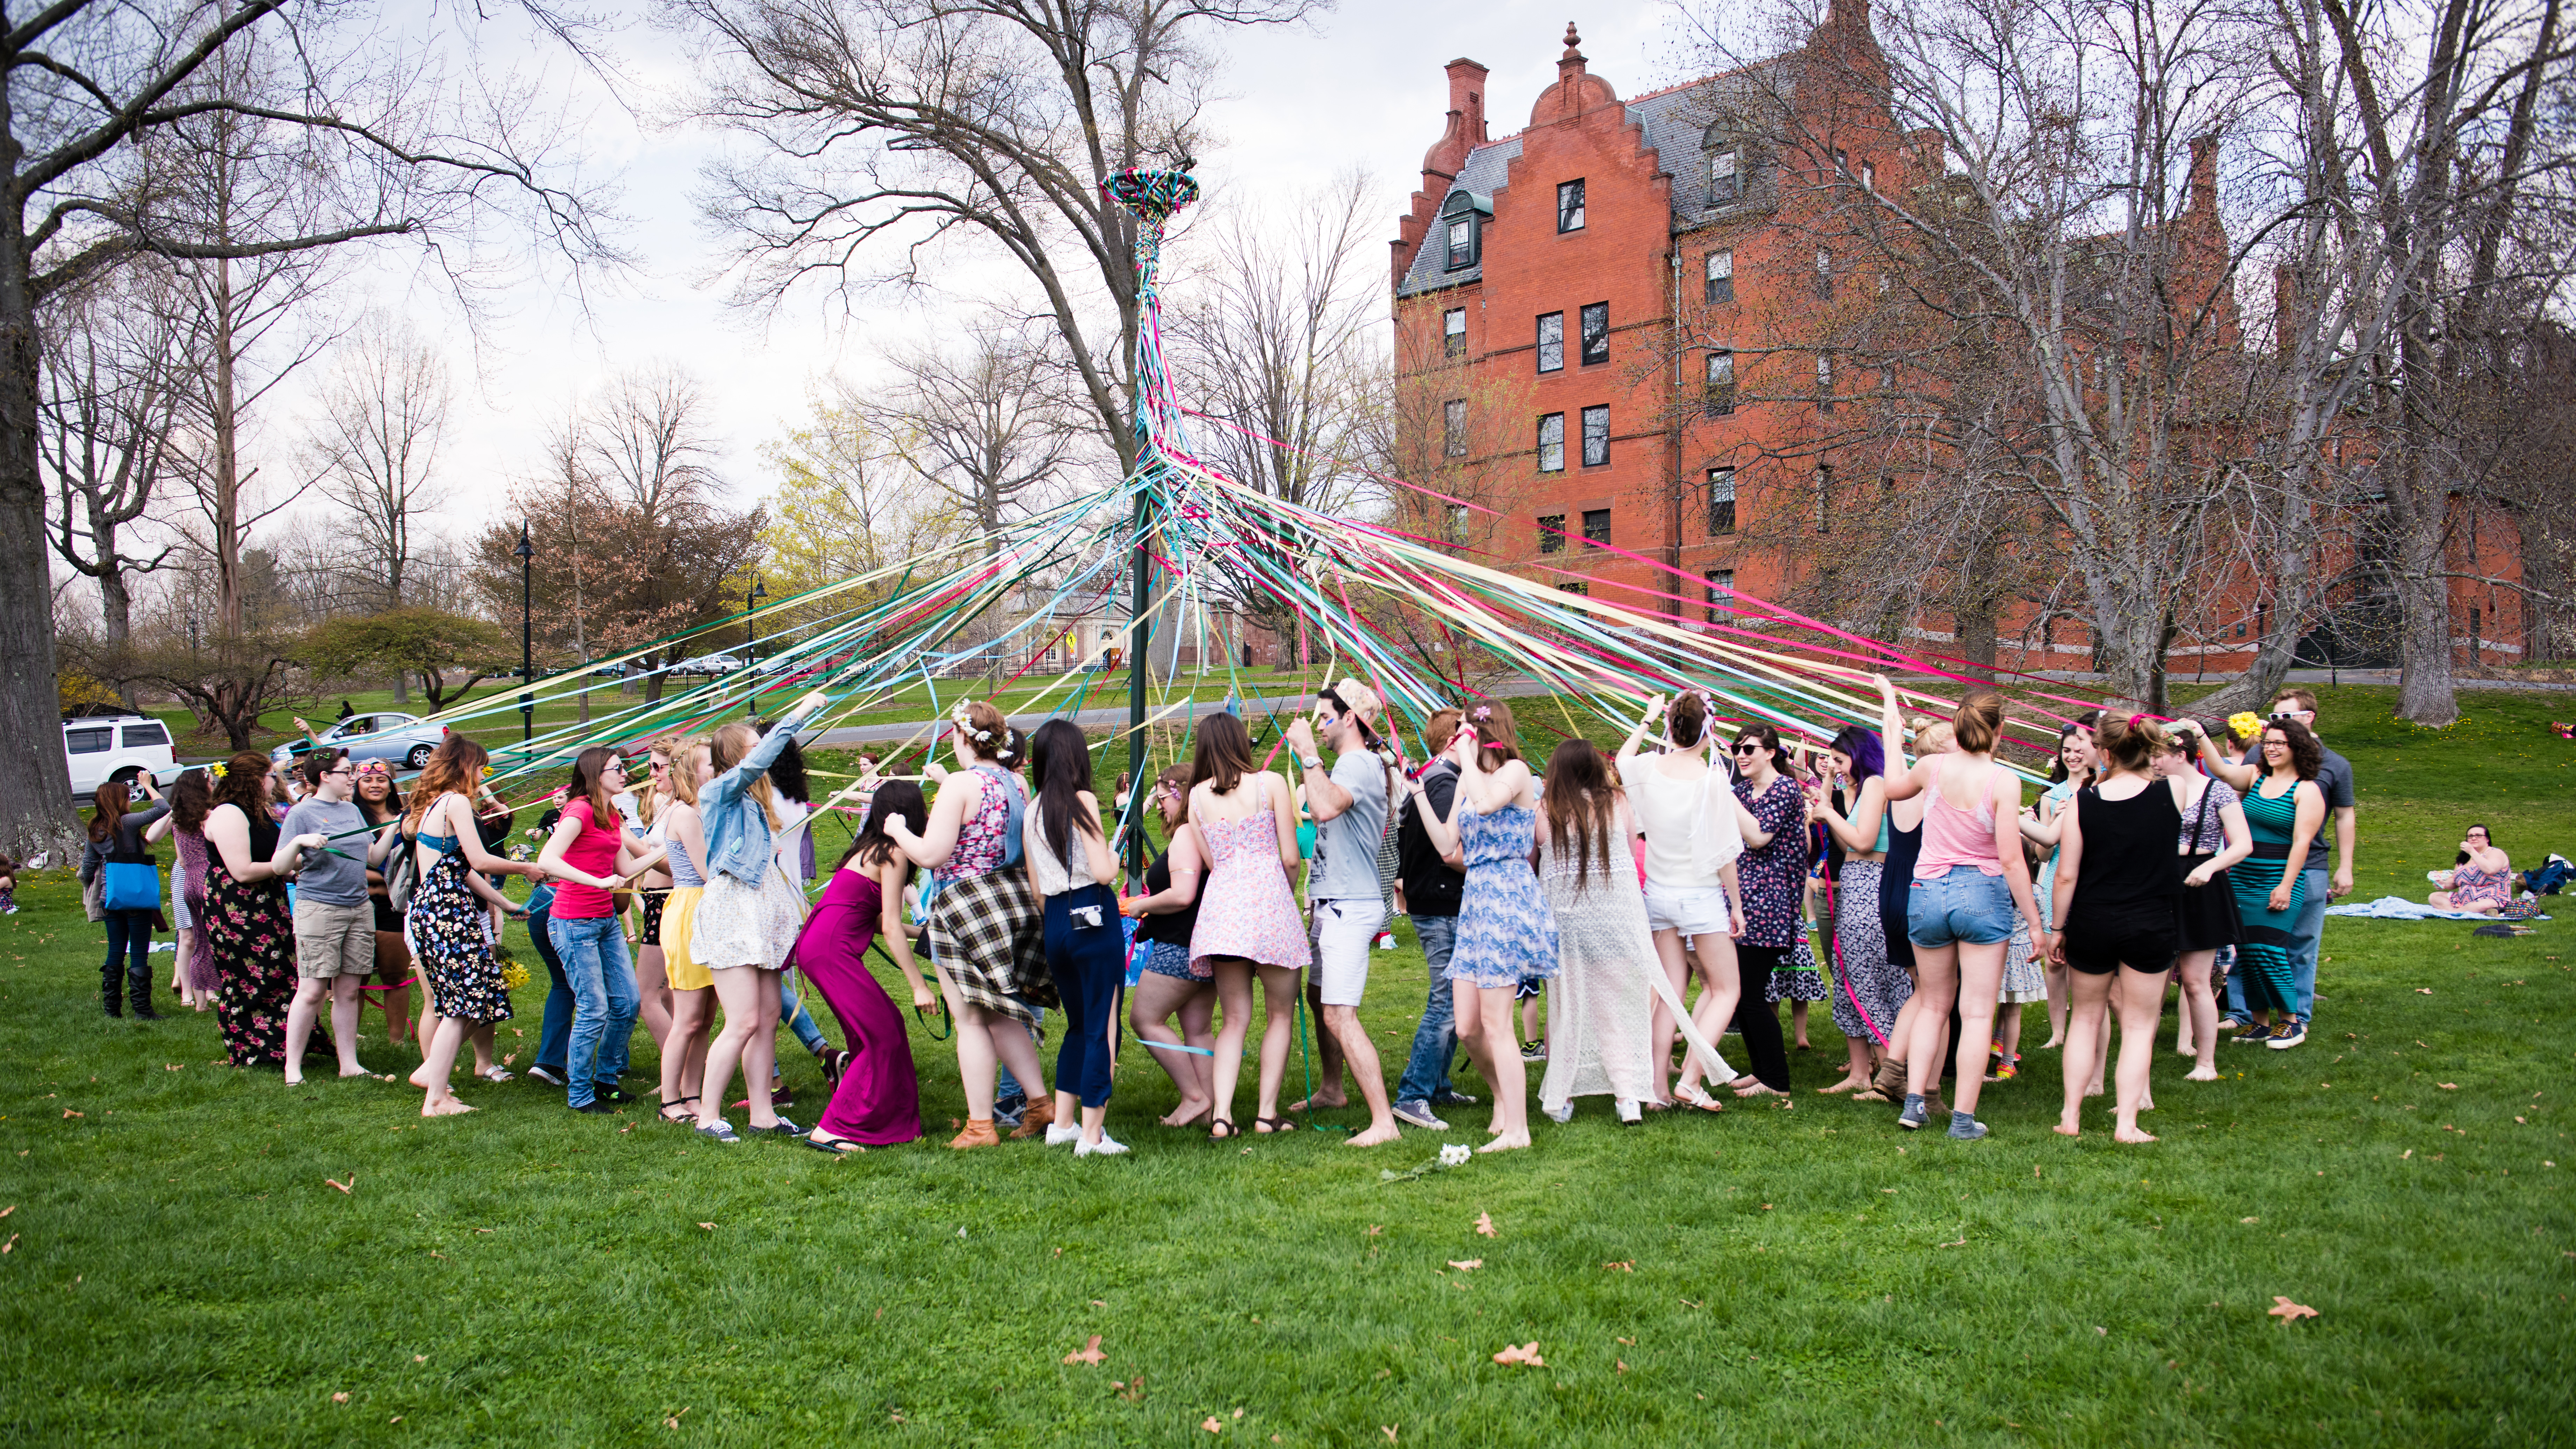 Dancing around the maypole, Pangy Day, 2016